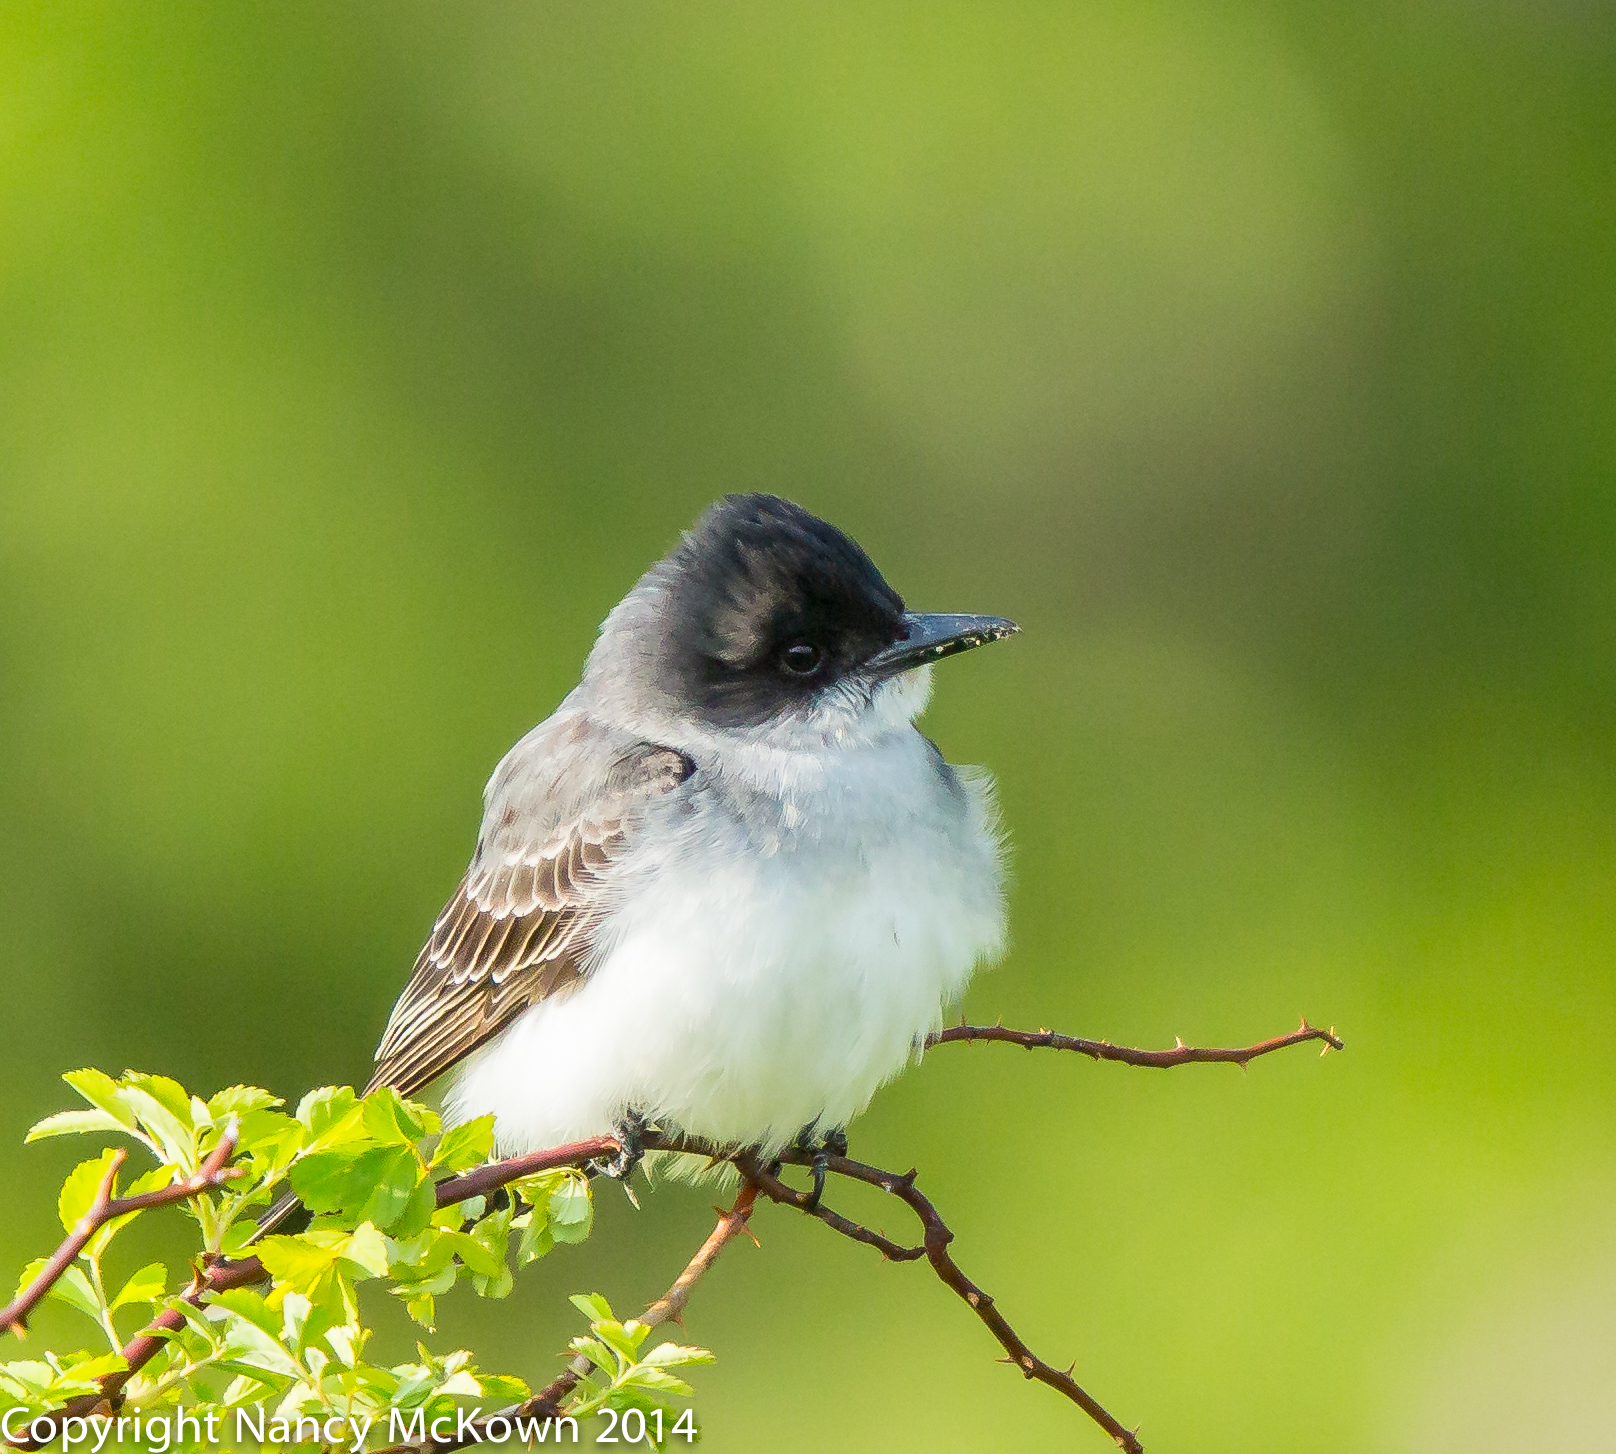 Photograph of Eastern Kingbird